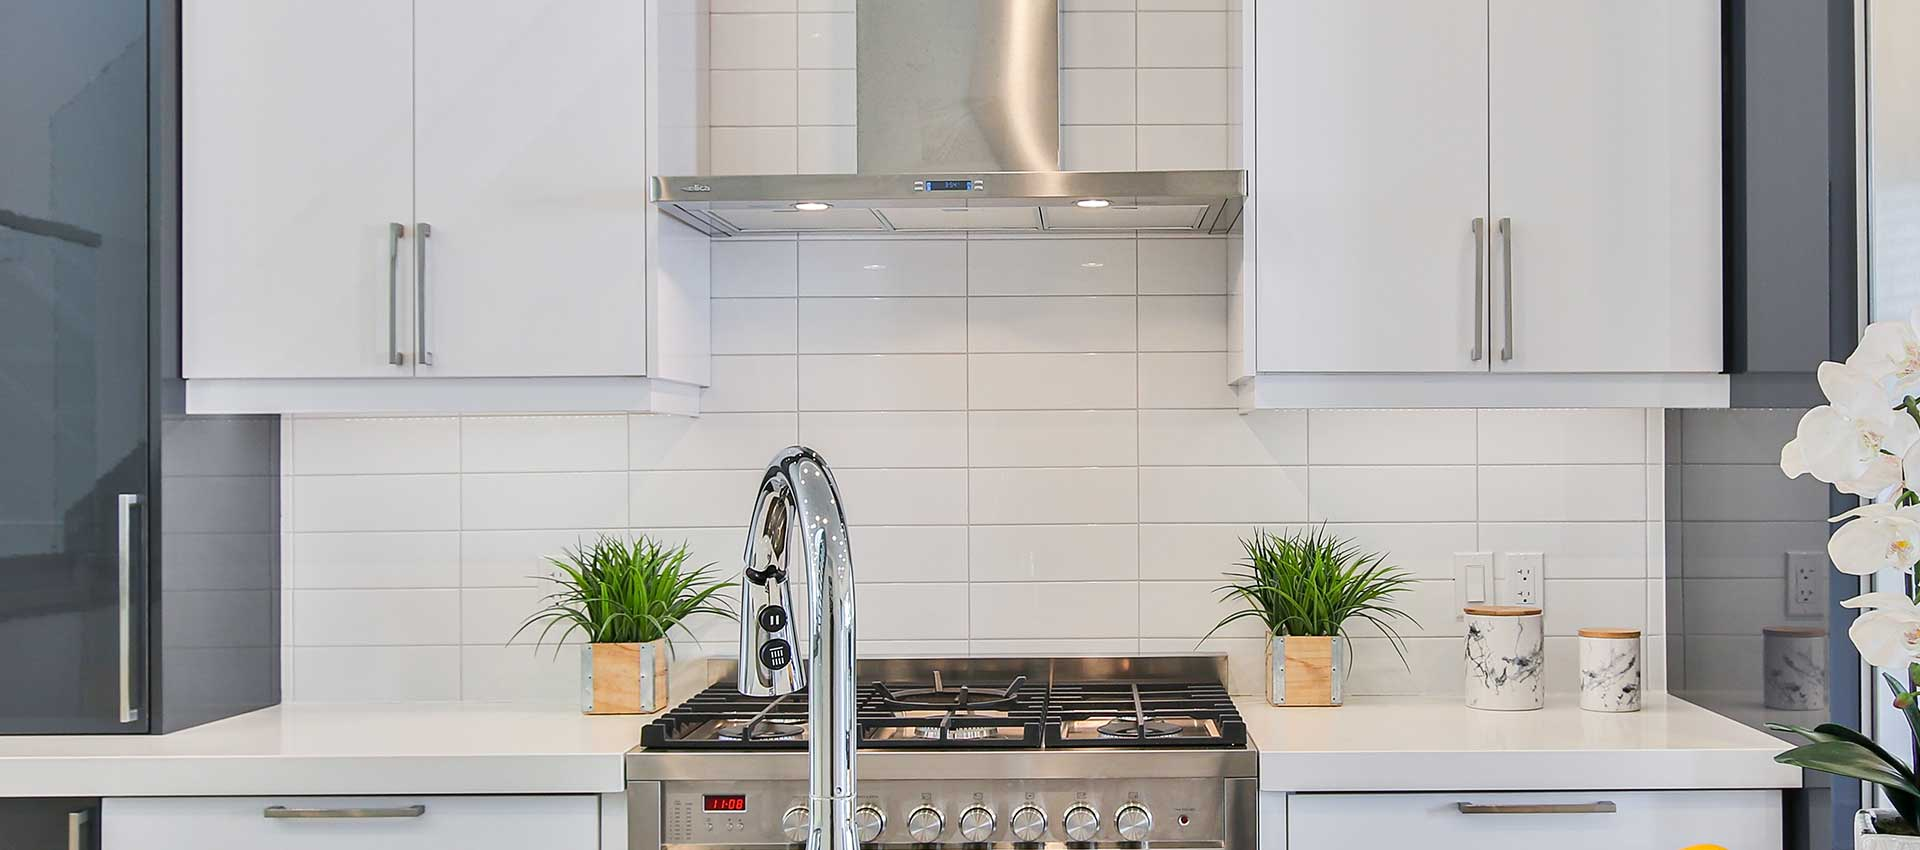 Under Cabinet Range Hood for your Kitchen in Pakistan